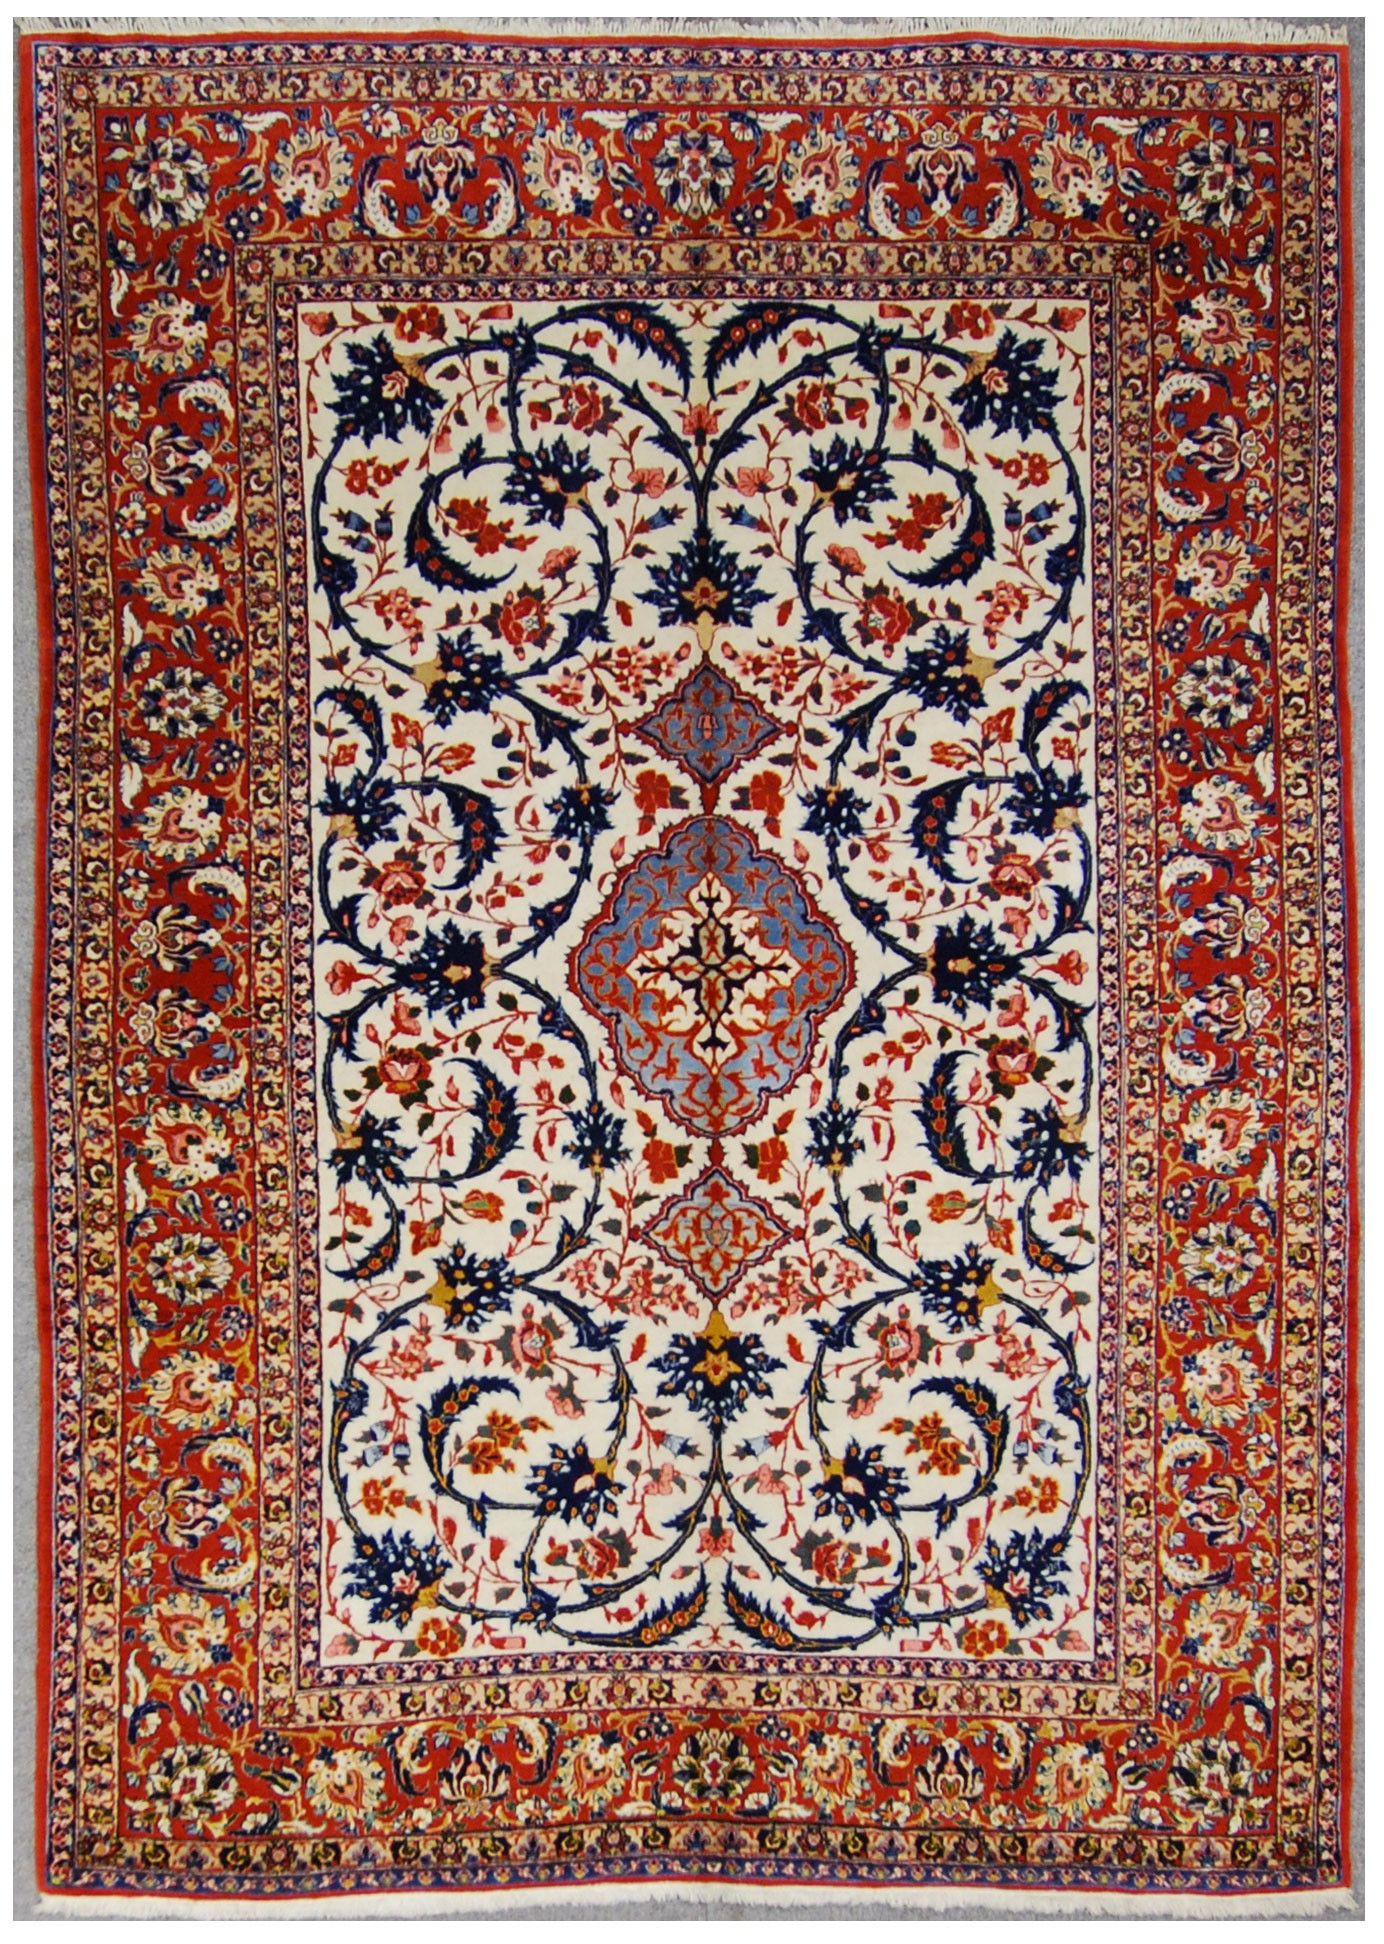 Antique Persian Isaphan